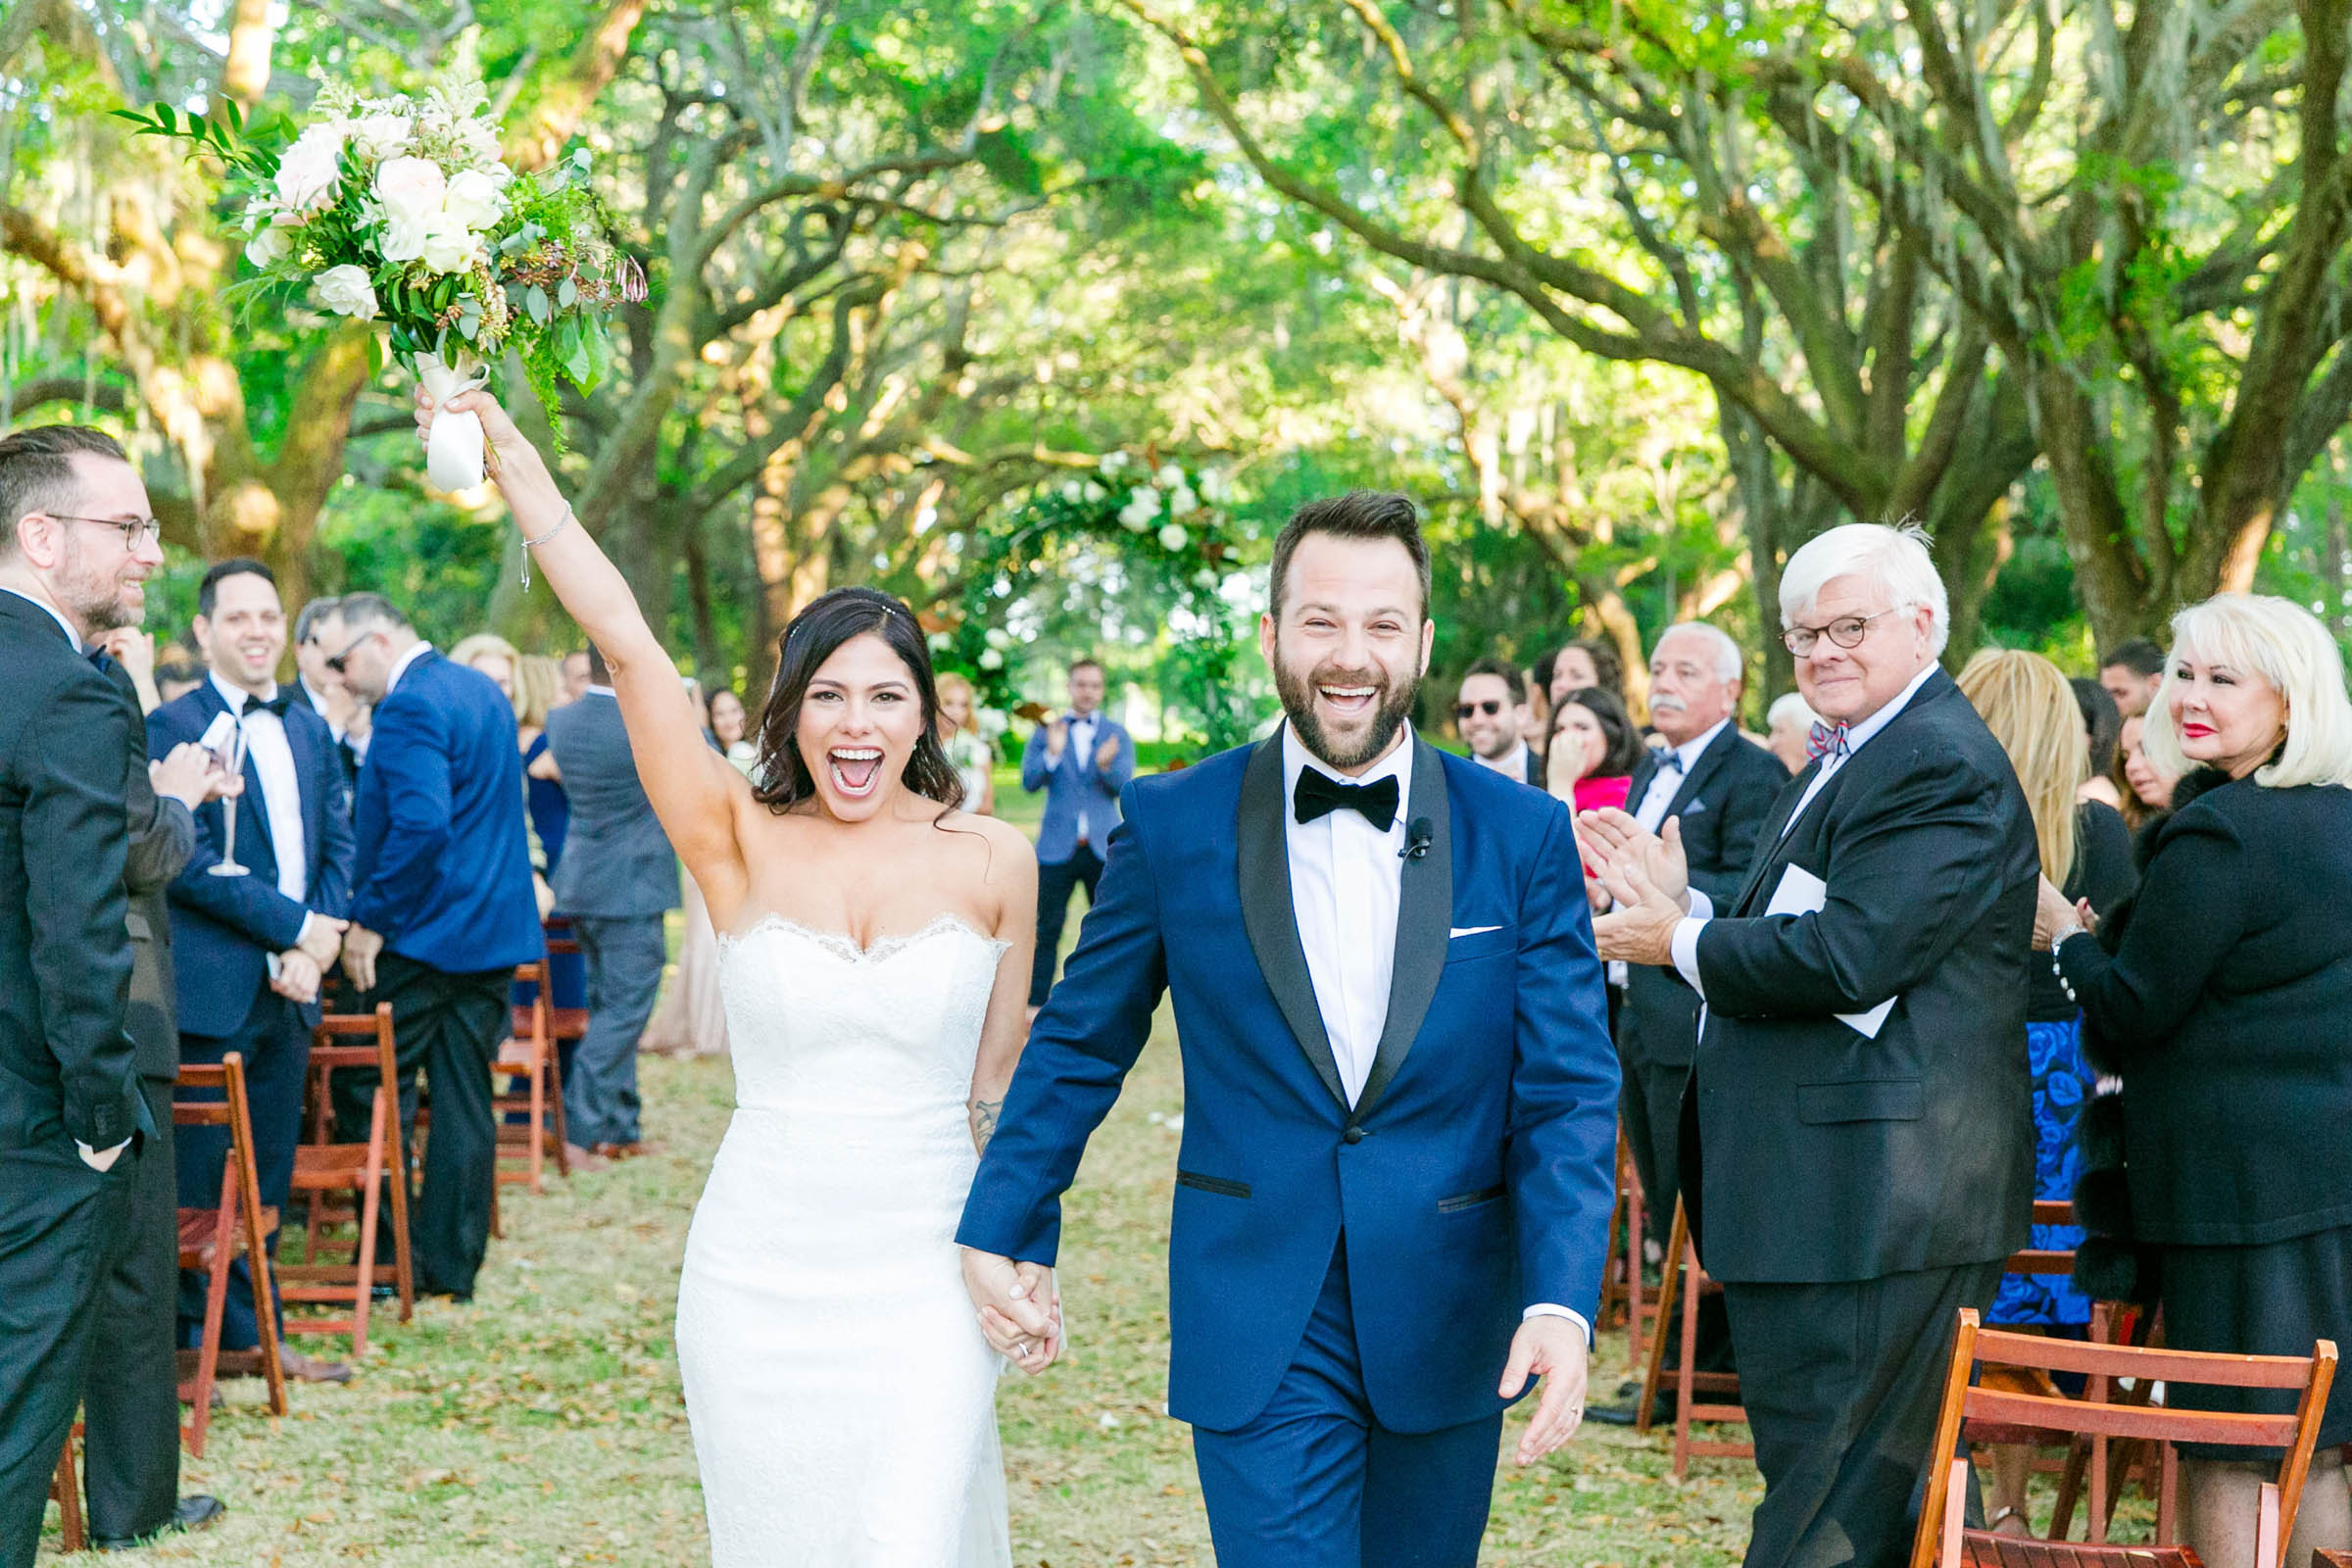 Happy couple outdoor recessional - photo by Dana Cubbage Weddings